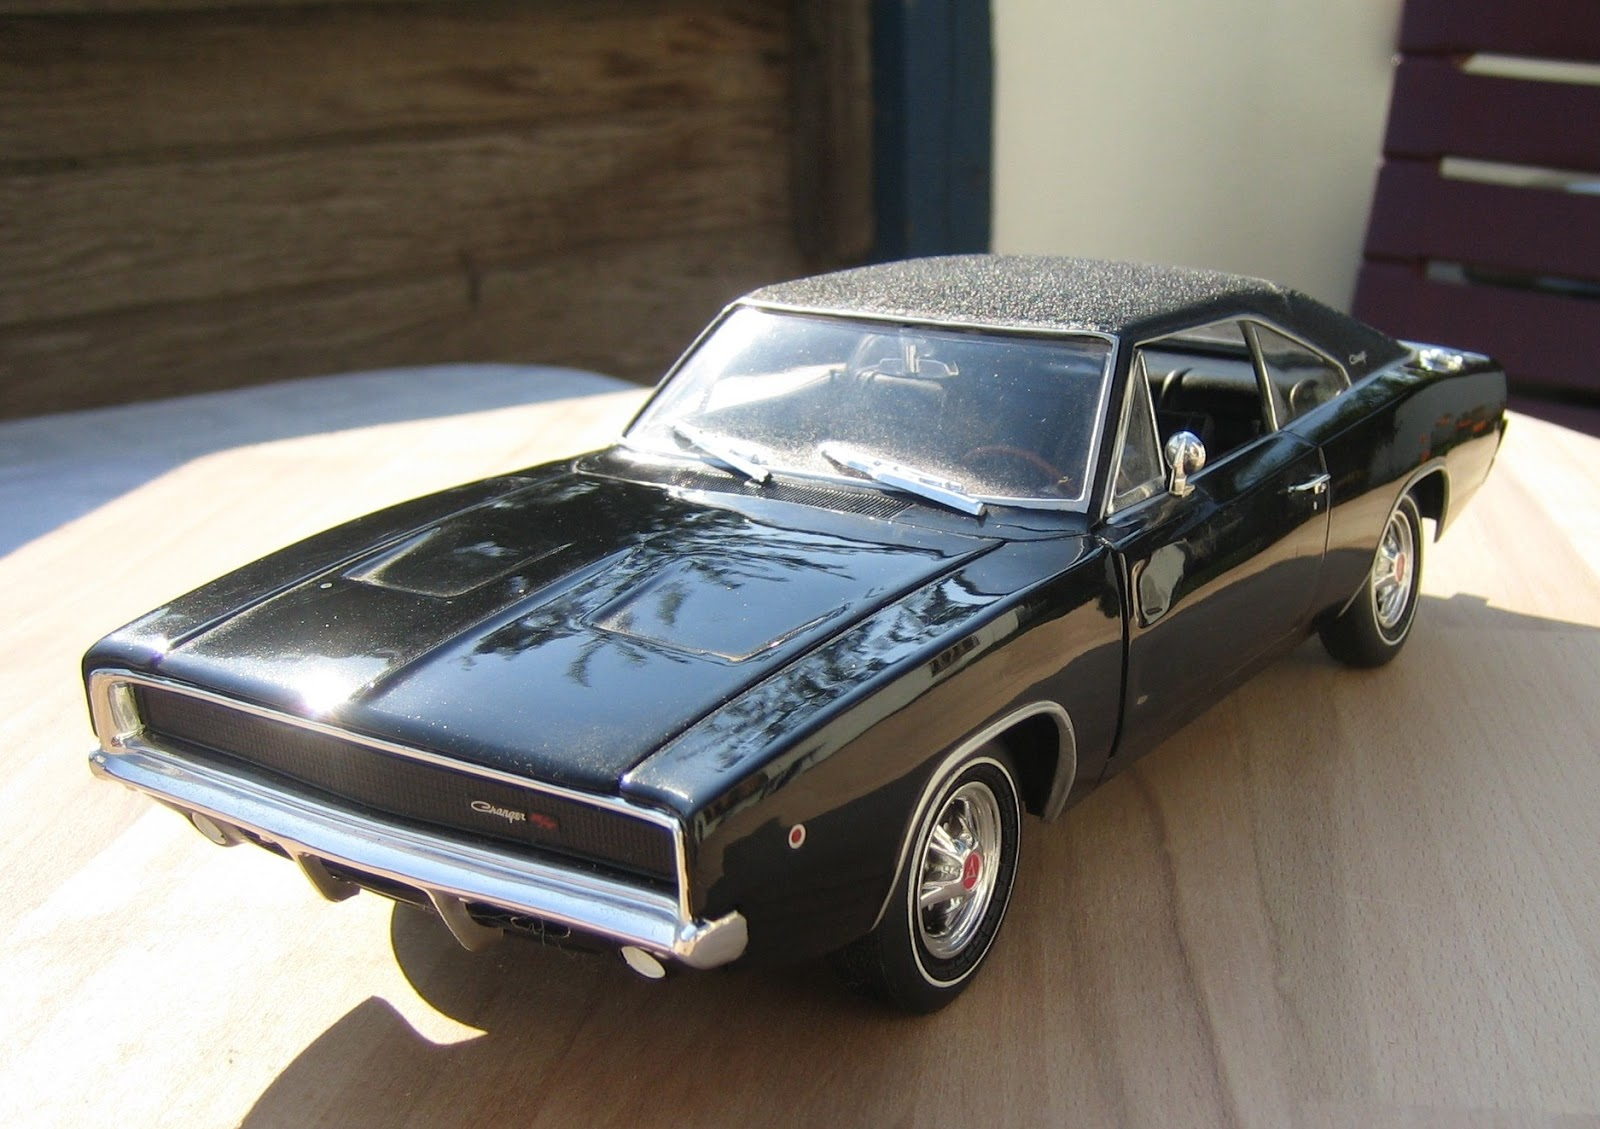 1968 Dodge Charger Wallpapers HD Wallpapers   Blog 1600x1129